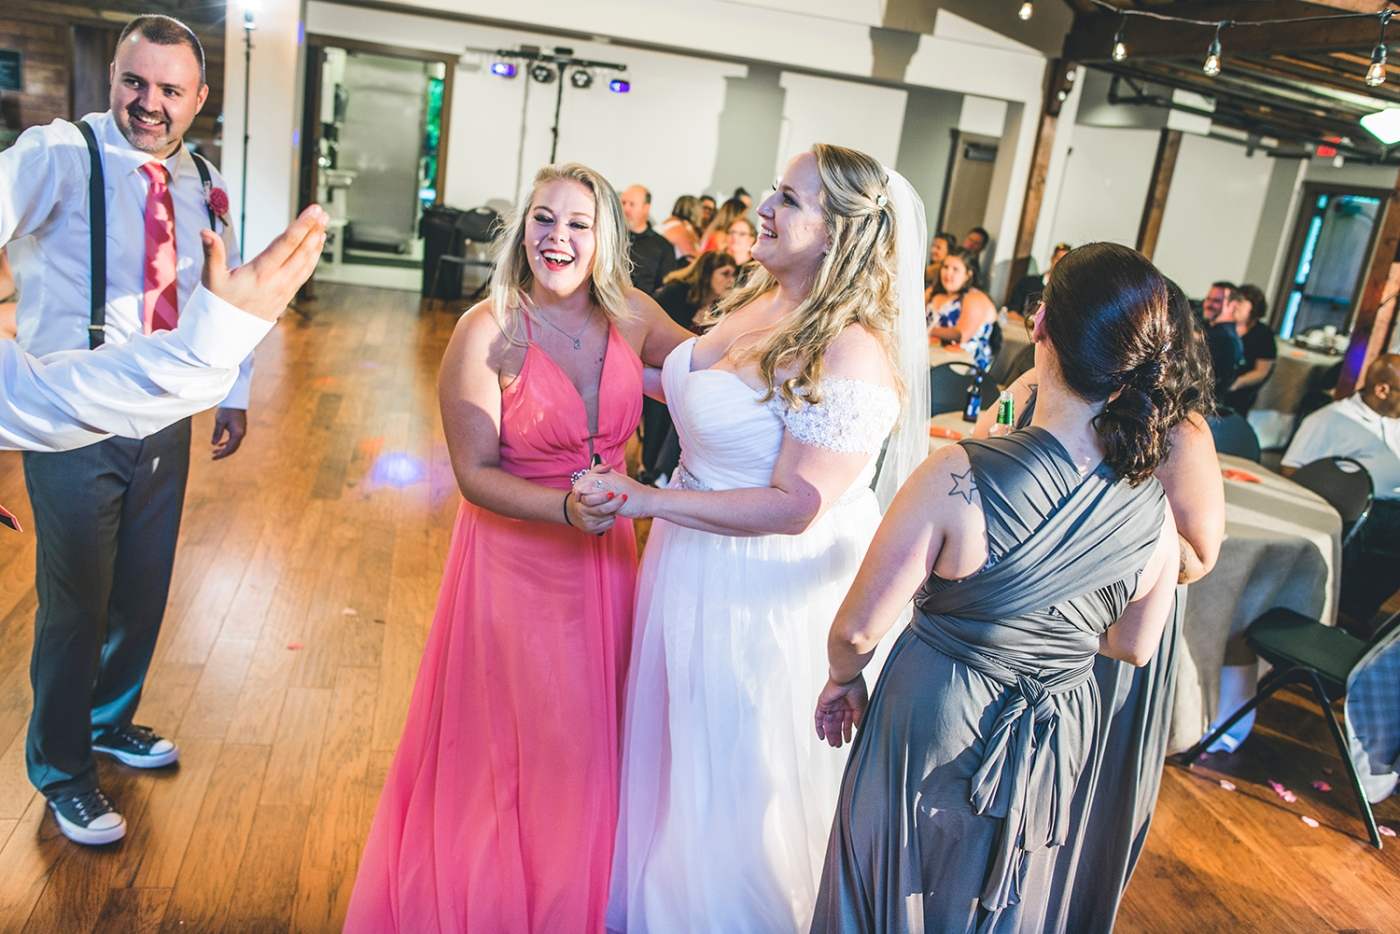 Jane_S_Seattle_photography_Kadie_and_Steve_2016_Des_Moines_Marina_Wedding_DSC_2178